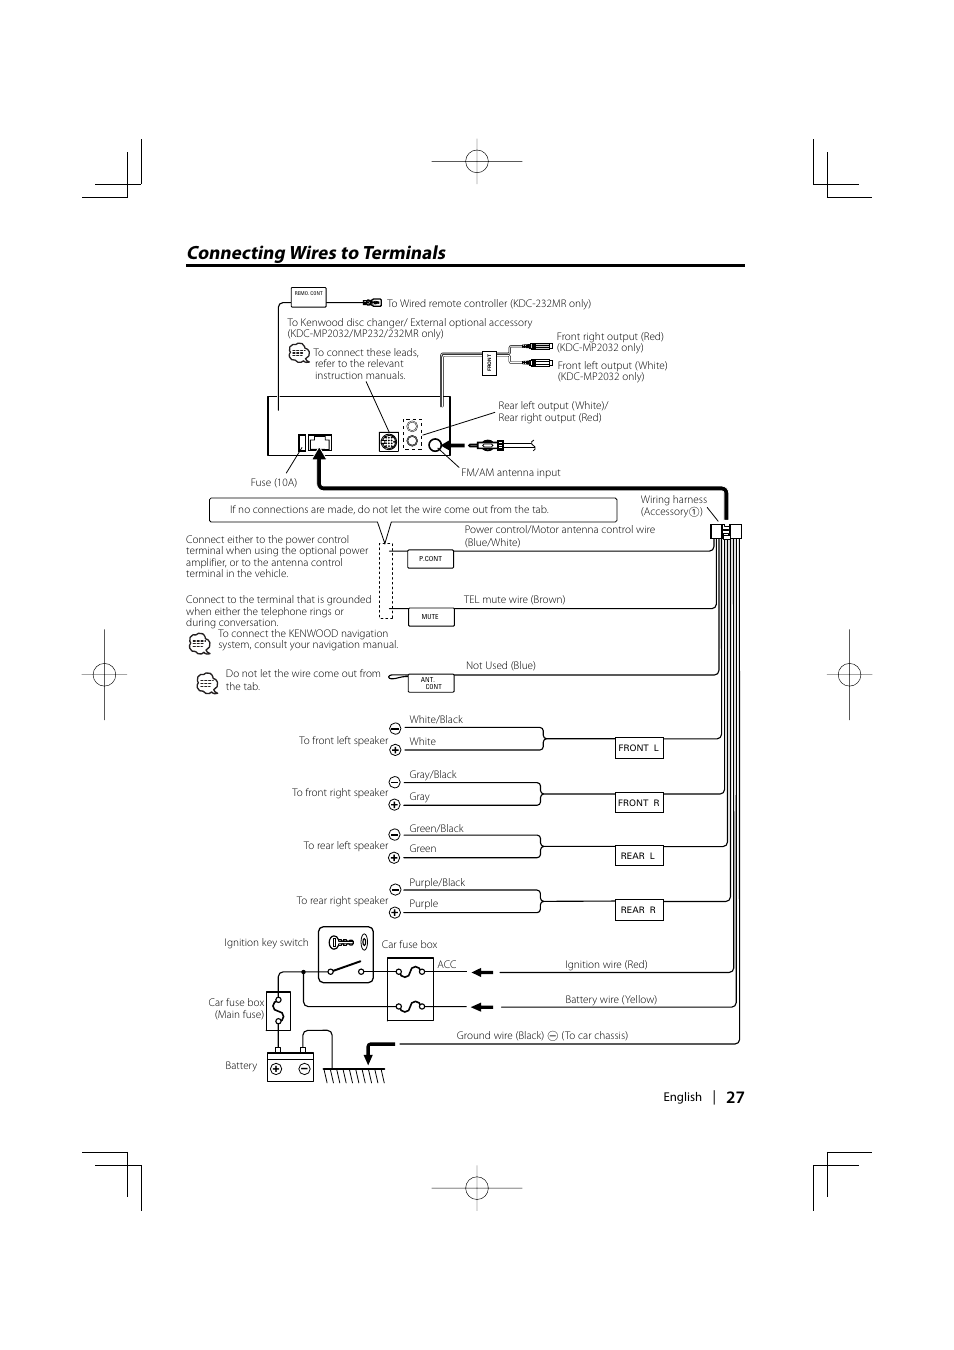 Connecting Wires To Terminals Kenwood Kdc Mp2032 User Manual Car Fuse Box Are Grounded Page 27 34